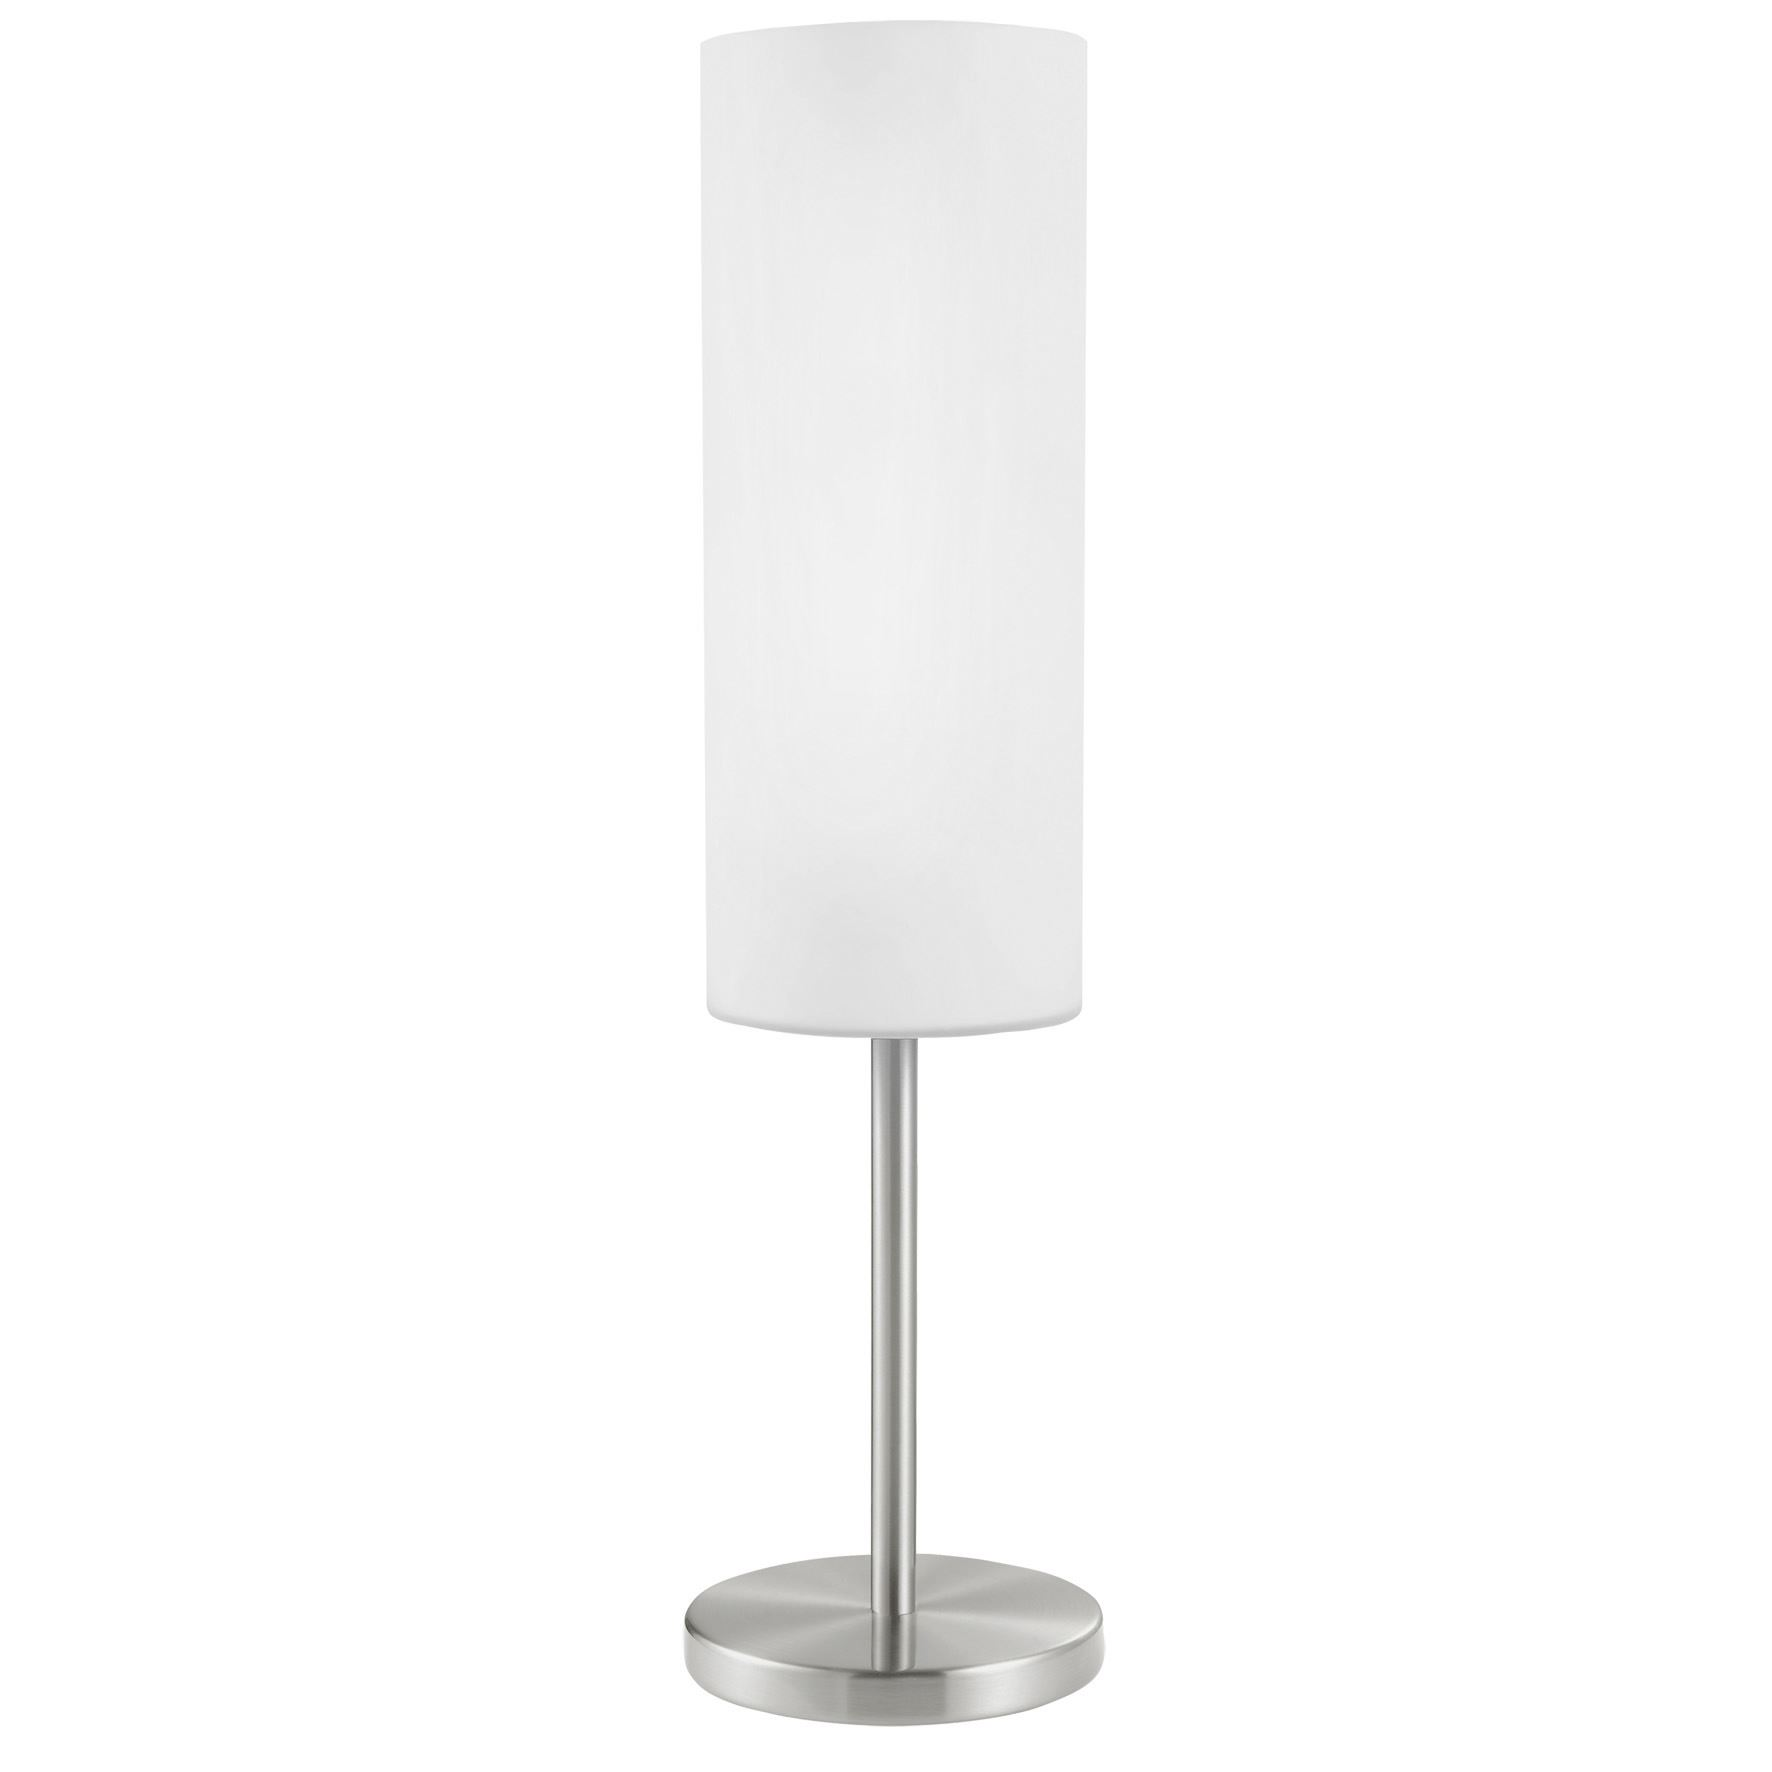 Troy 3 Modern Table Lamp 1 Light Coated White Glass Shade